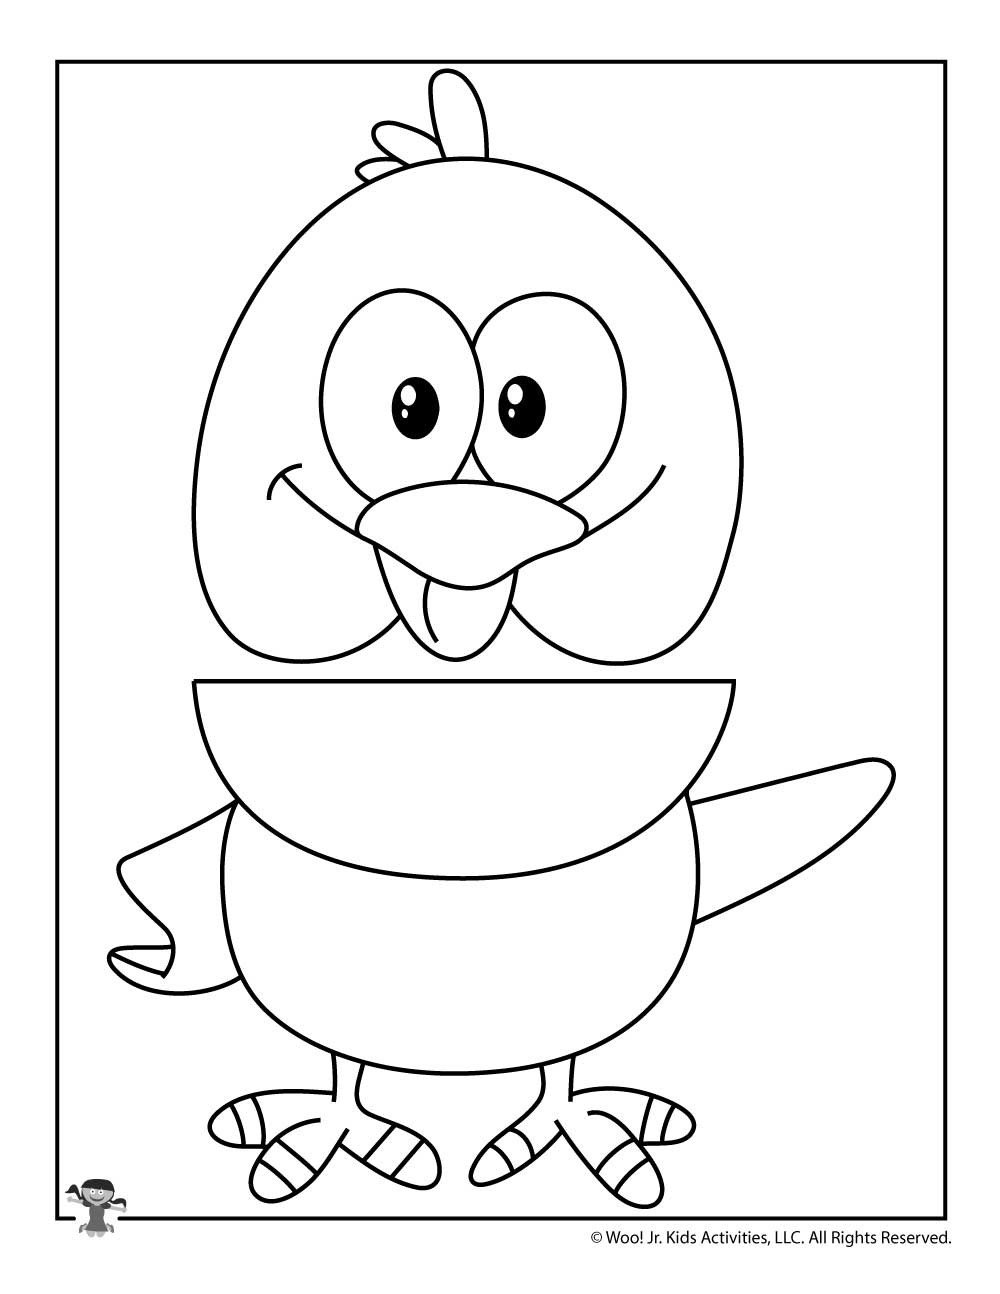 Paper Bag Puppet Template